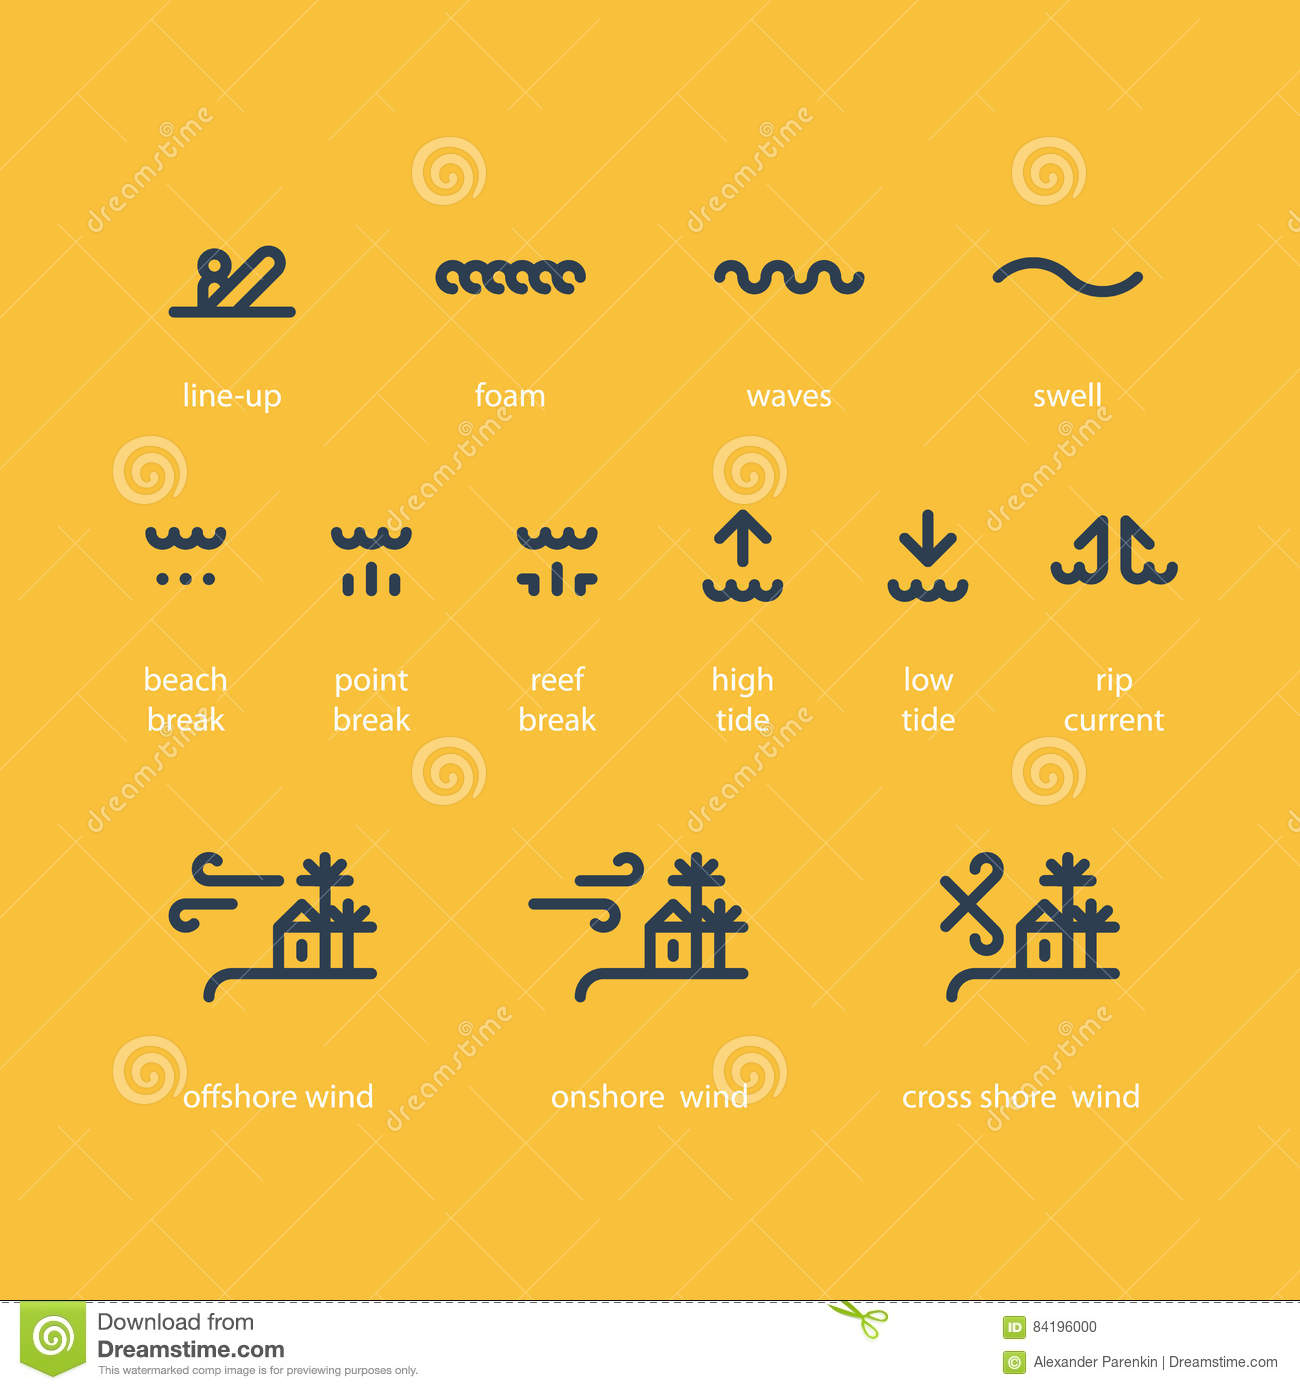 Low tide stock illustrations 189 low tide stock illustrations surf school icon set low high tide rip current offshore onshore wind biocorpaavc